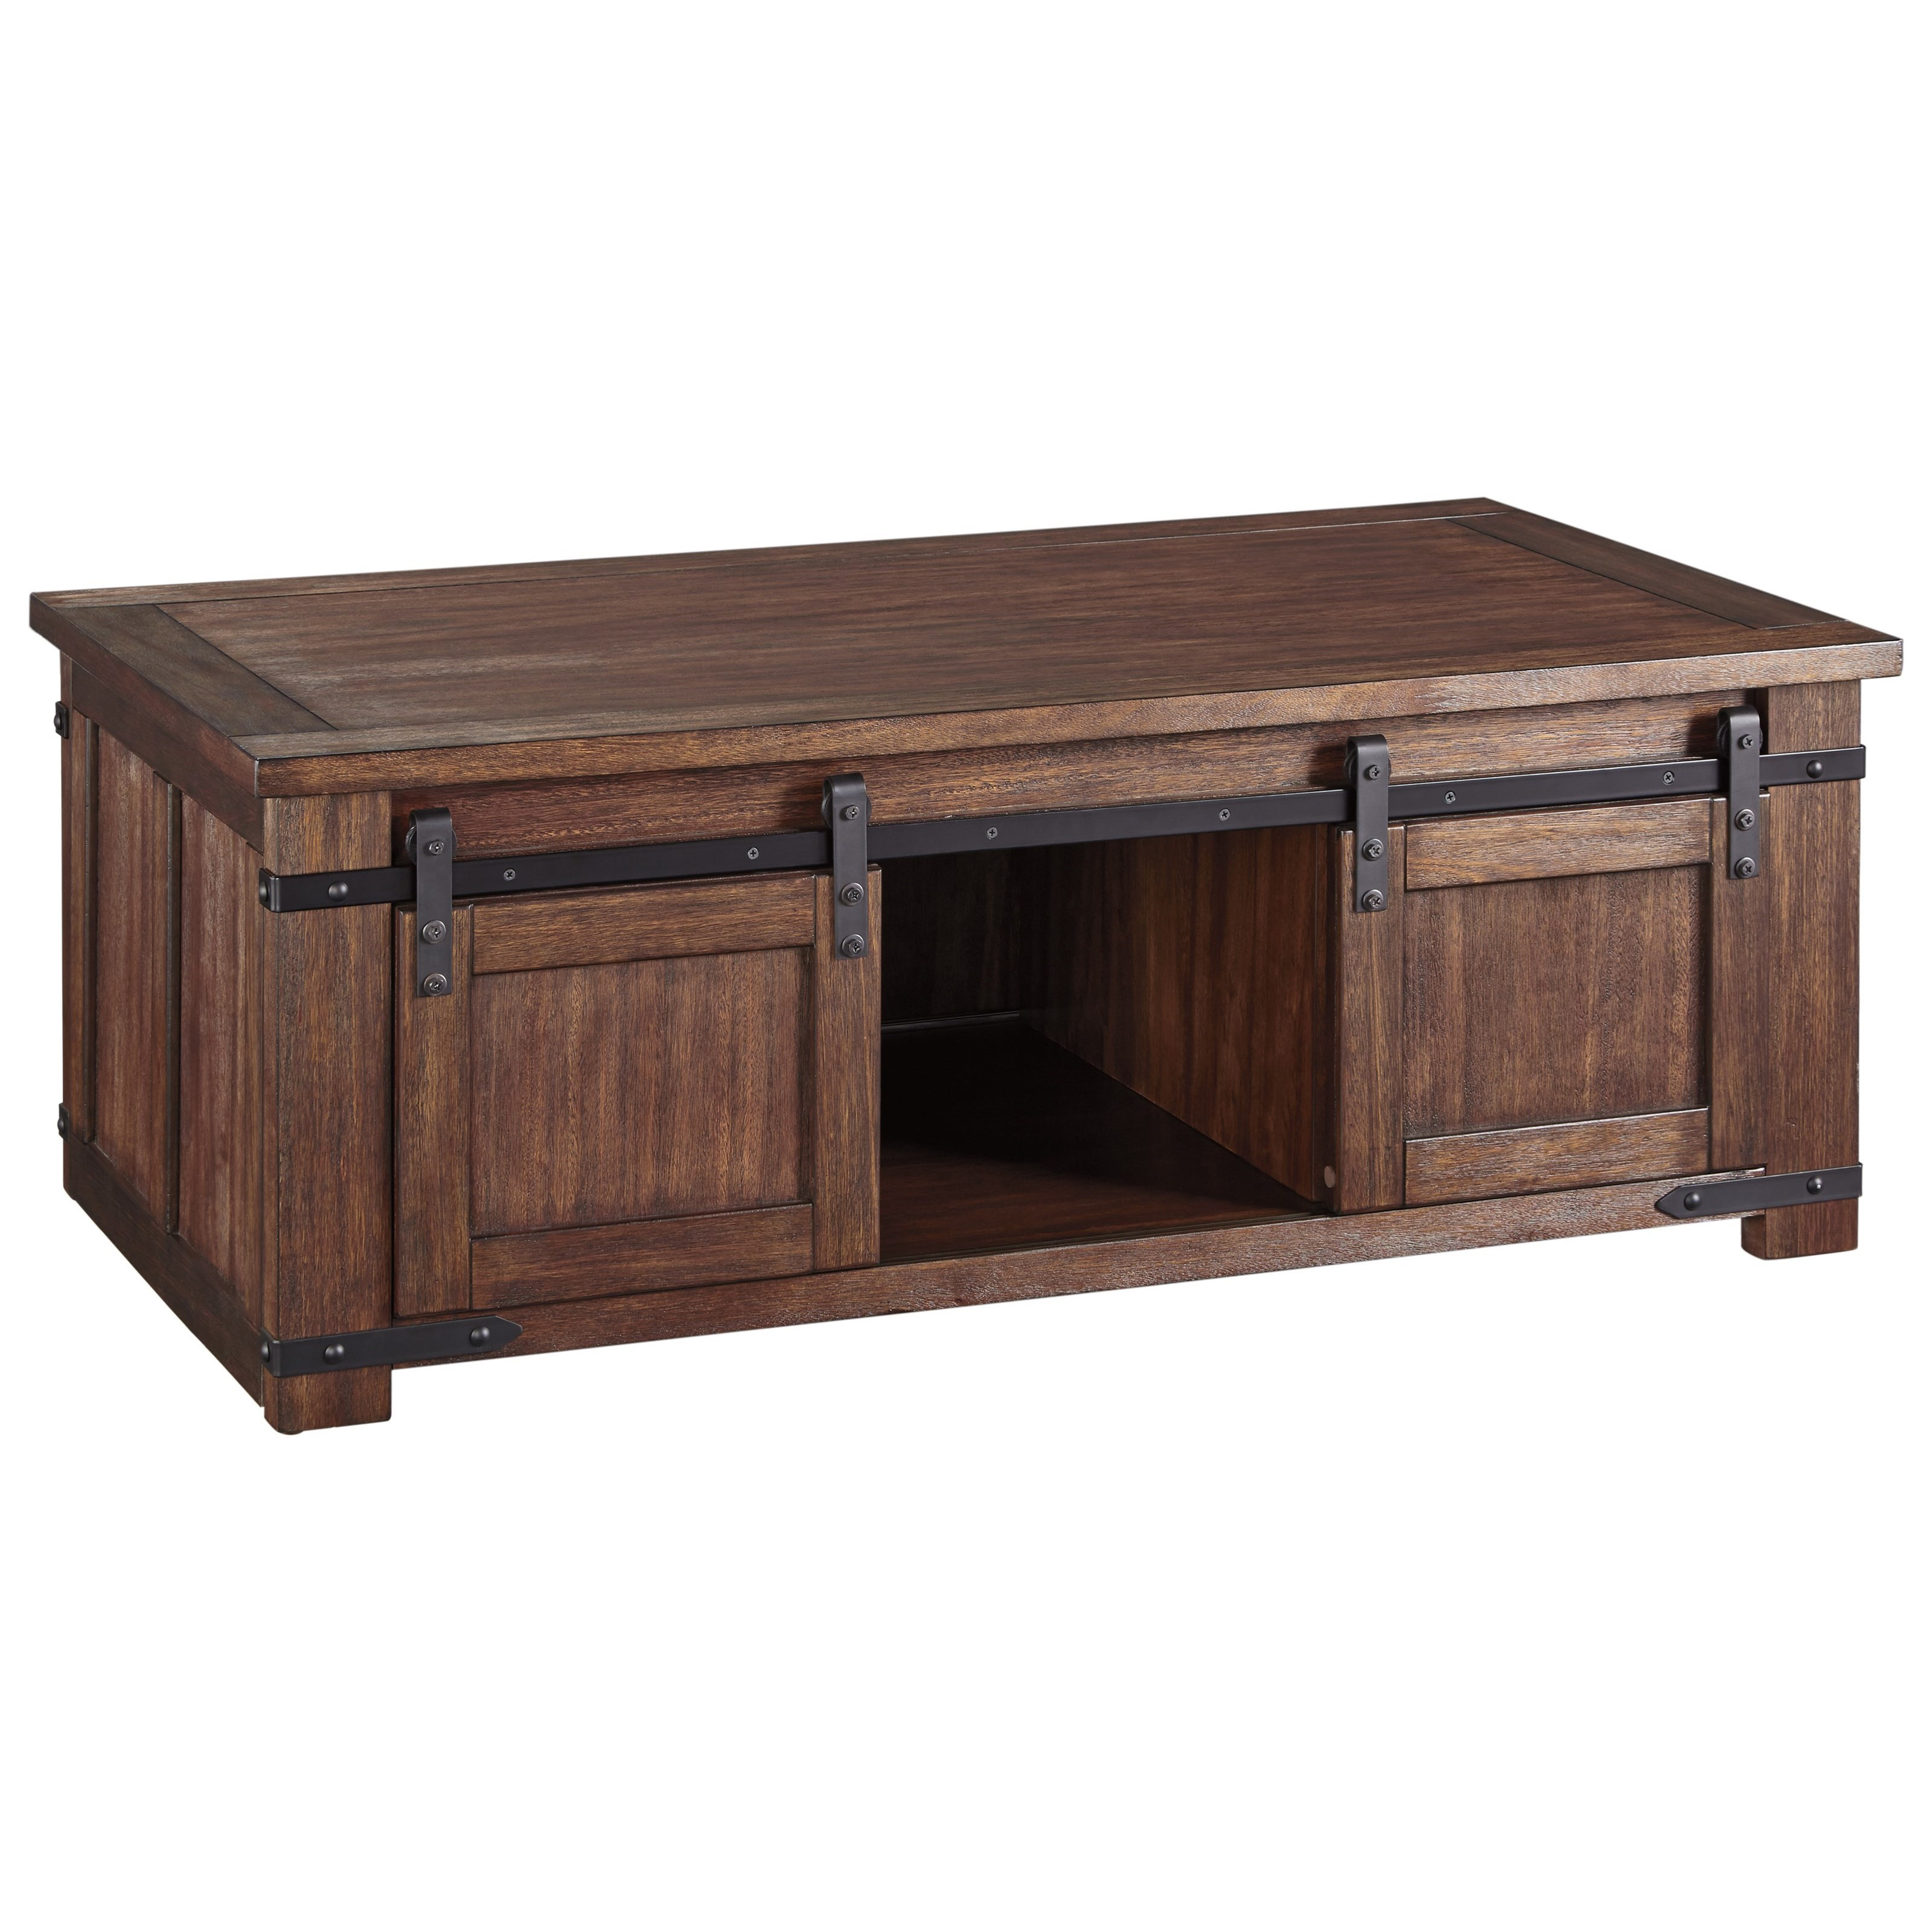 Rustic Cocktail Table with Sliding Barn Doors